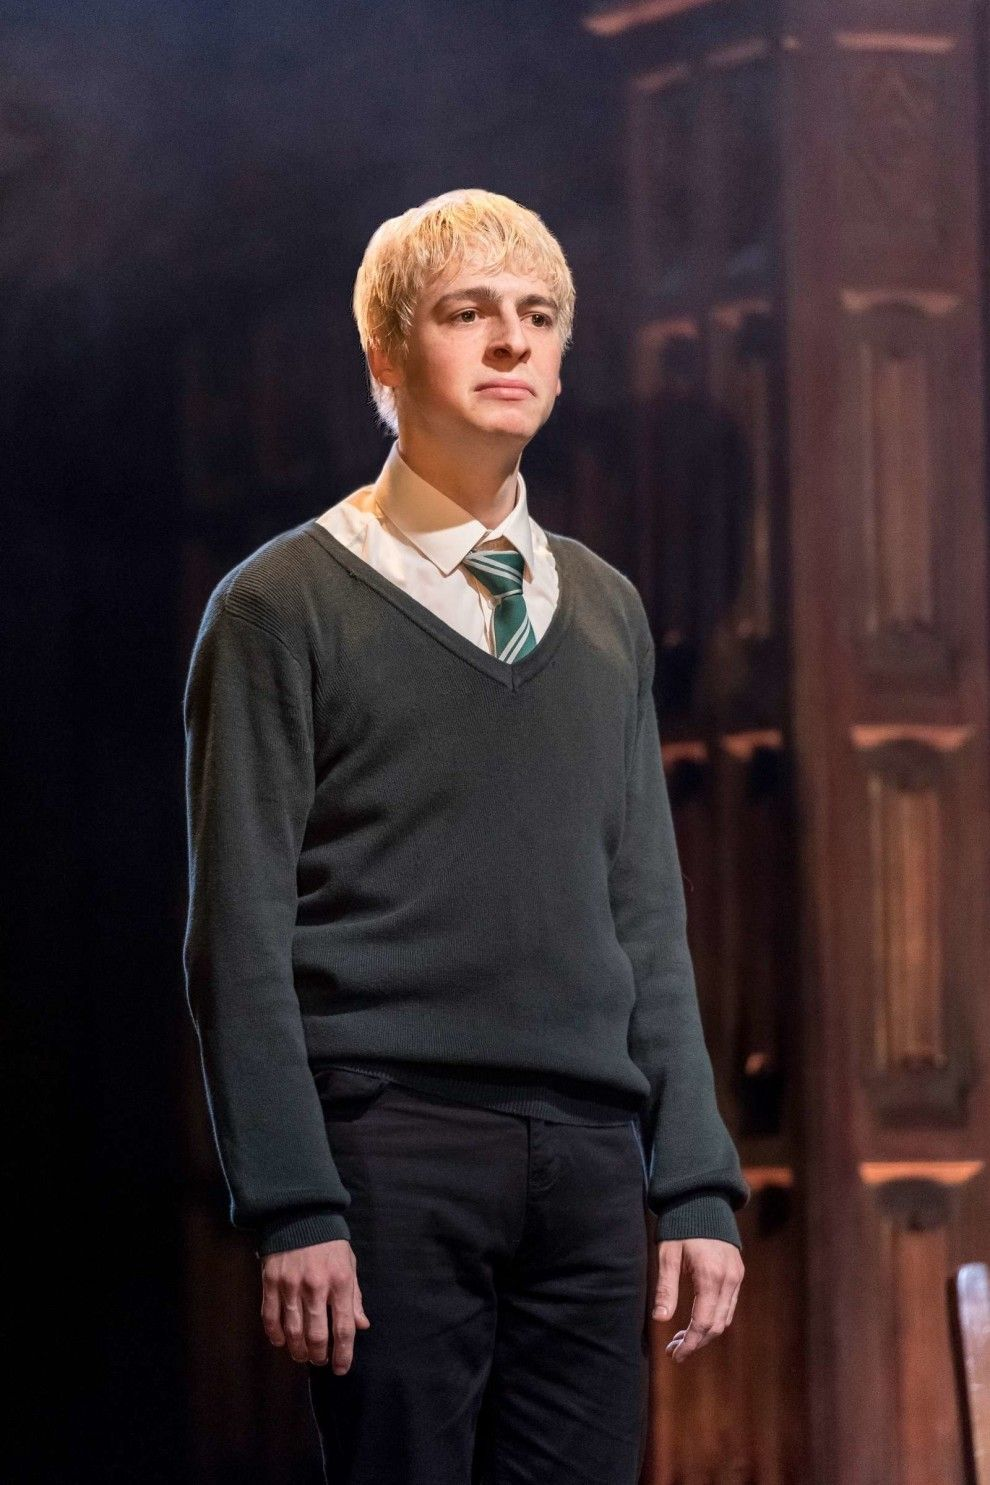 Harry Potter And The Cursed Child Photos Are Here And They Re So Magical Harry Potter Cursed Child Cursed Child Anthony Boyle